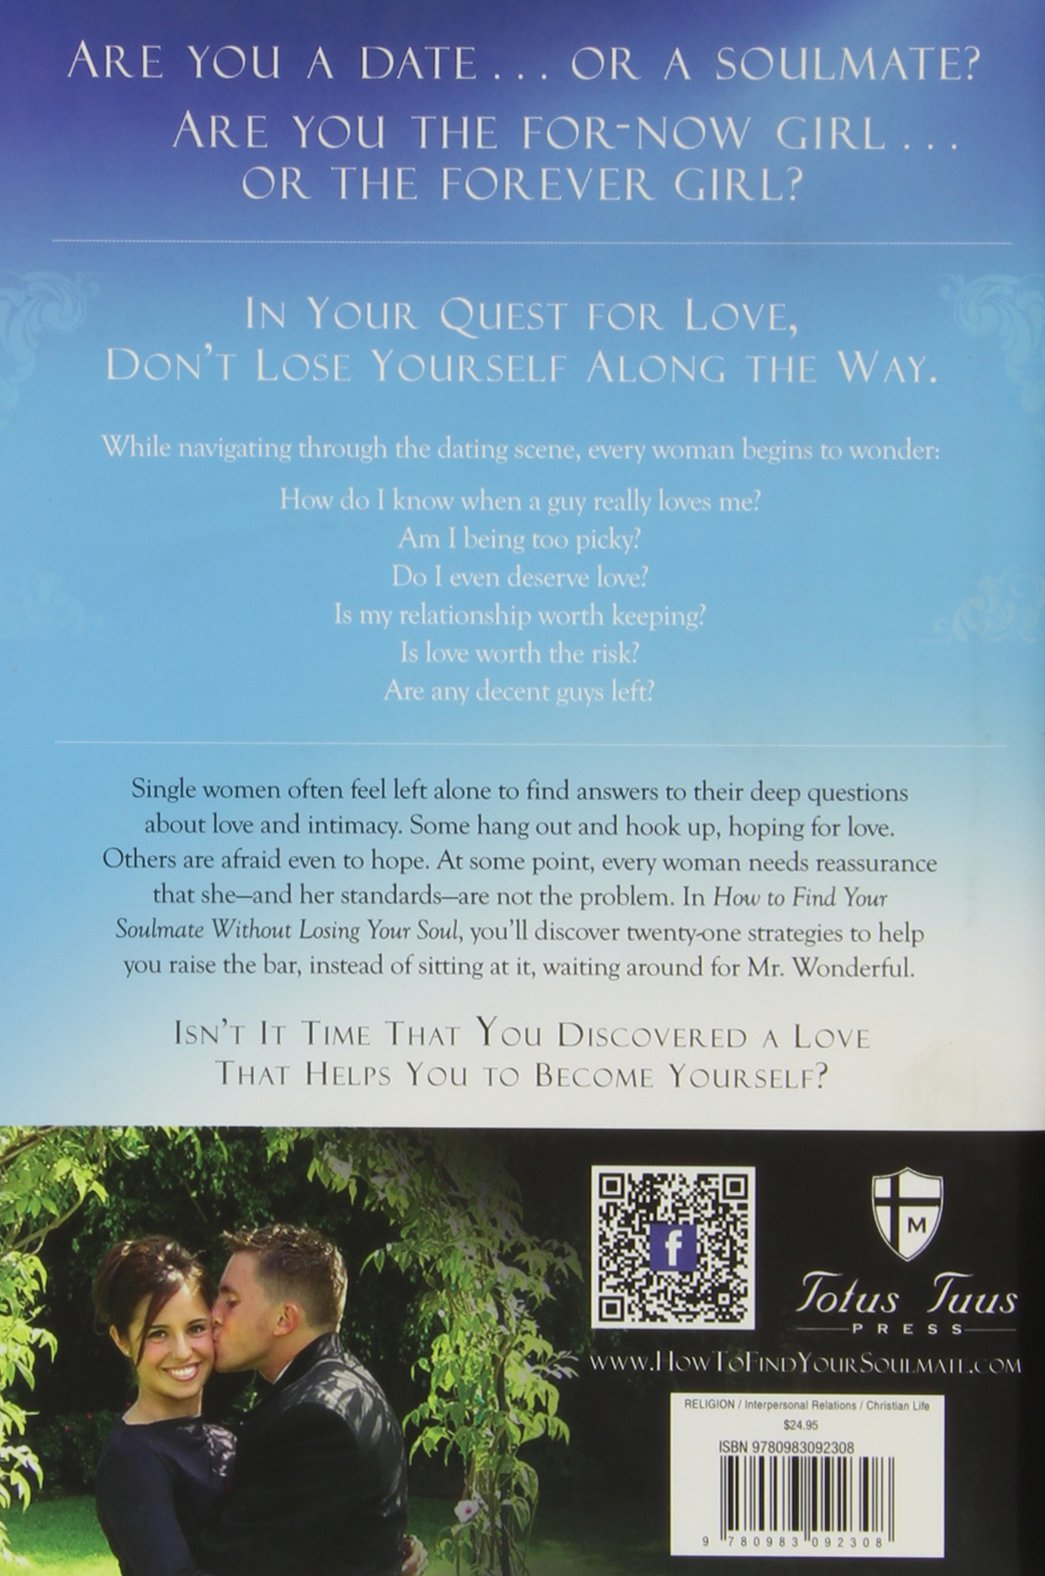 how to find your soulmate without losing your soul pdf